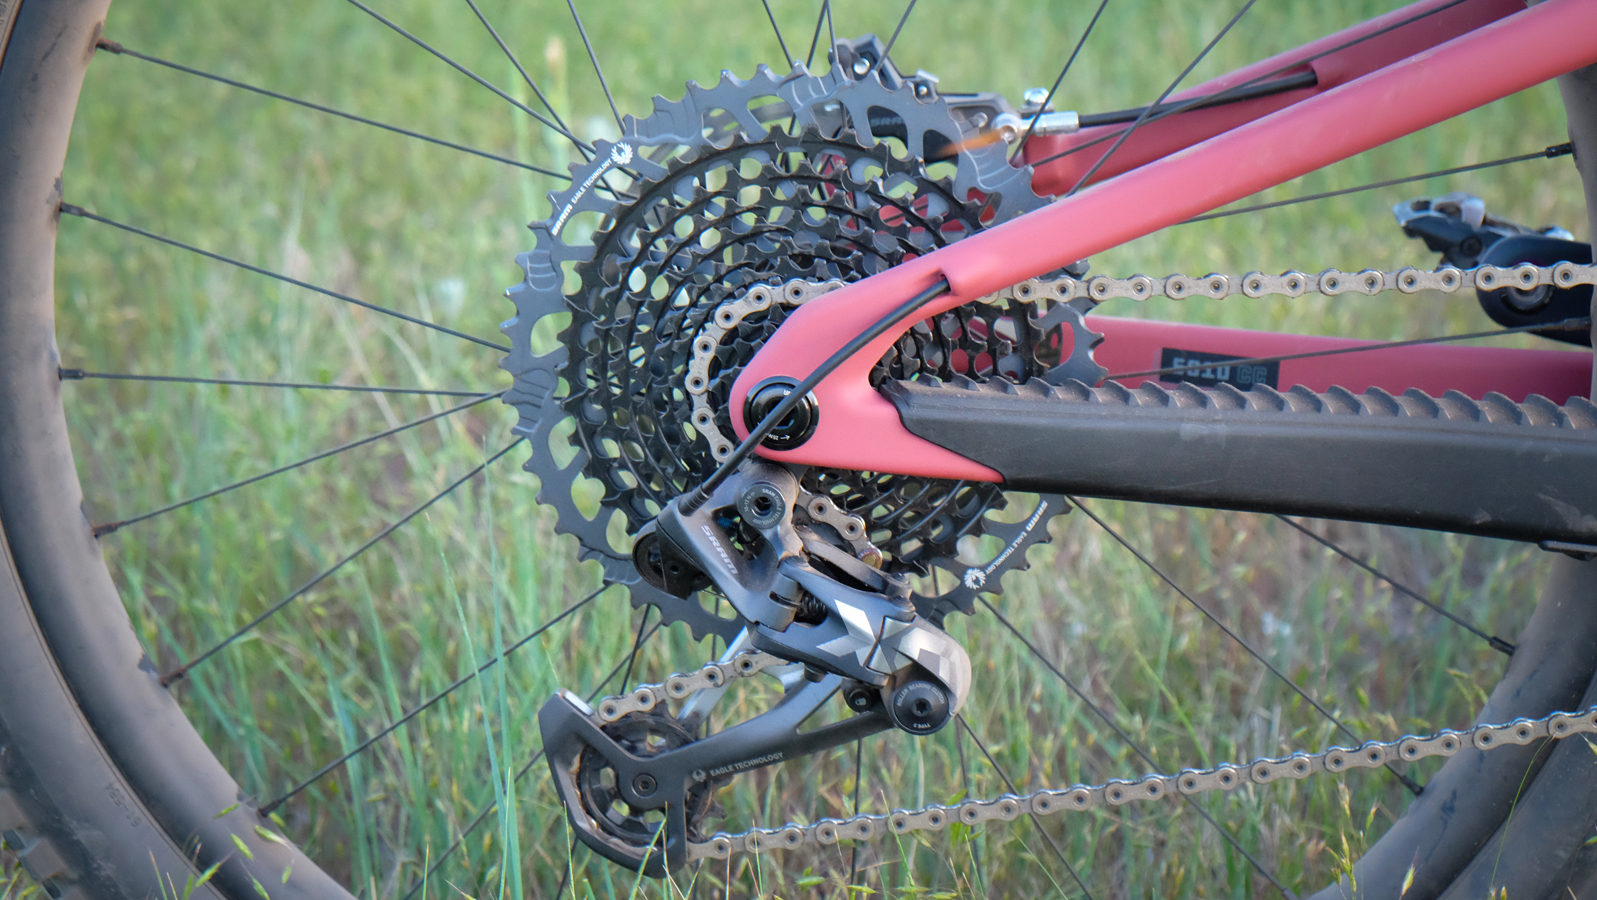 Our test bike came equipped with SRAM's Expanded Range XO1 drivetrain.